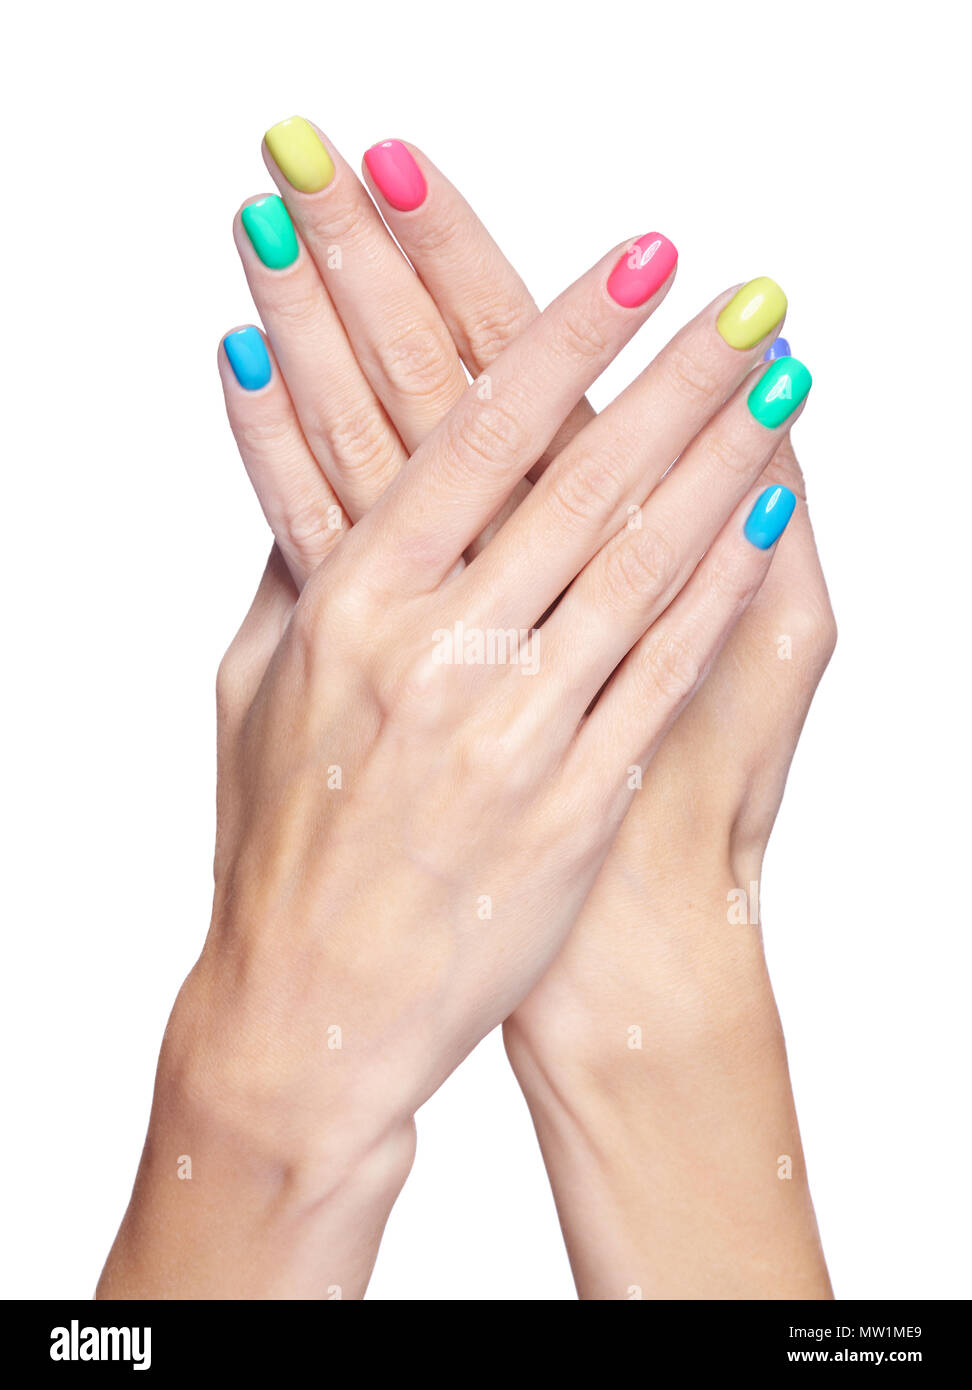 Female fingers with fancy bright green, yellow, pink and blue nails ...